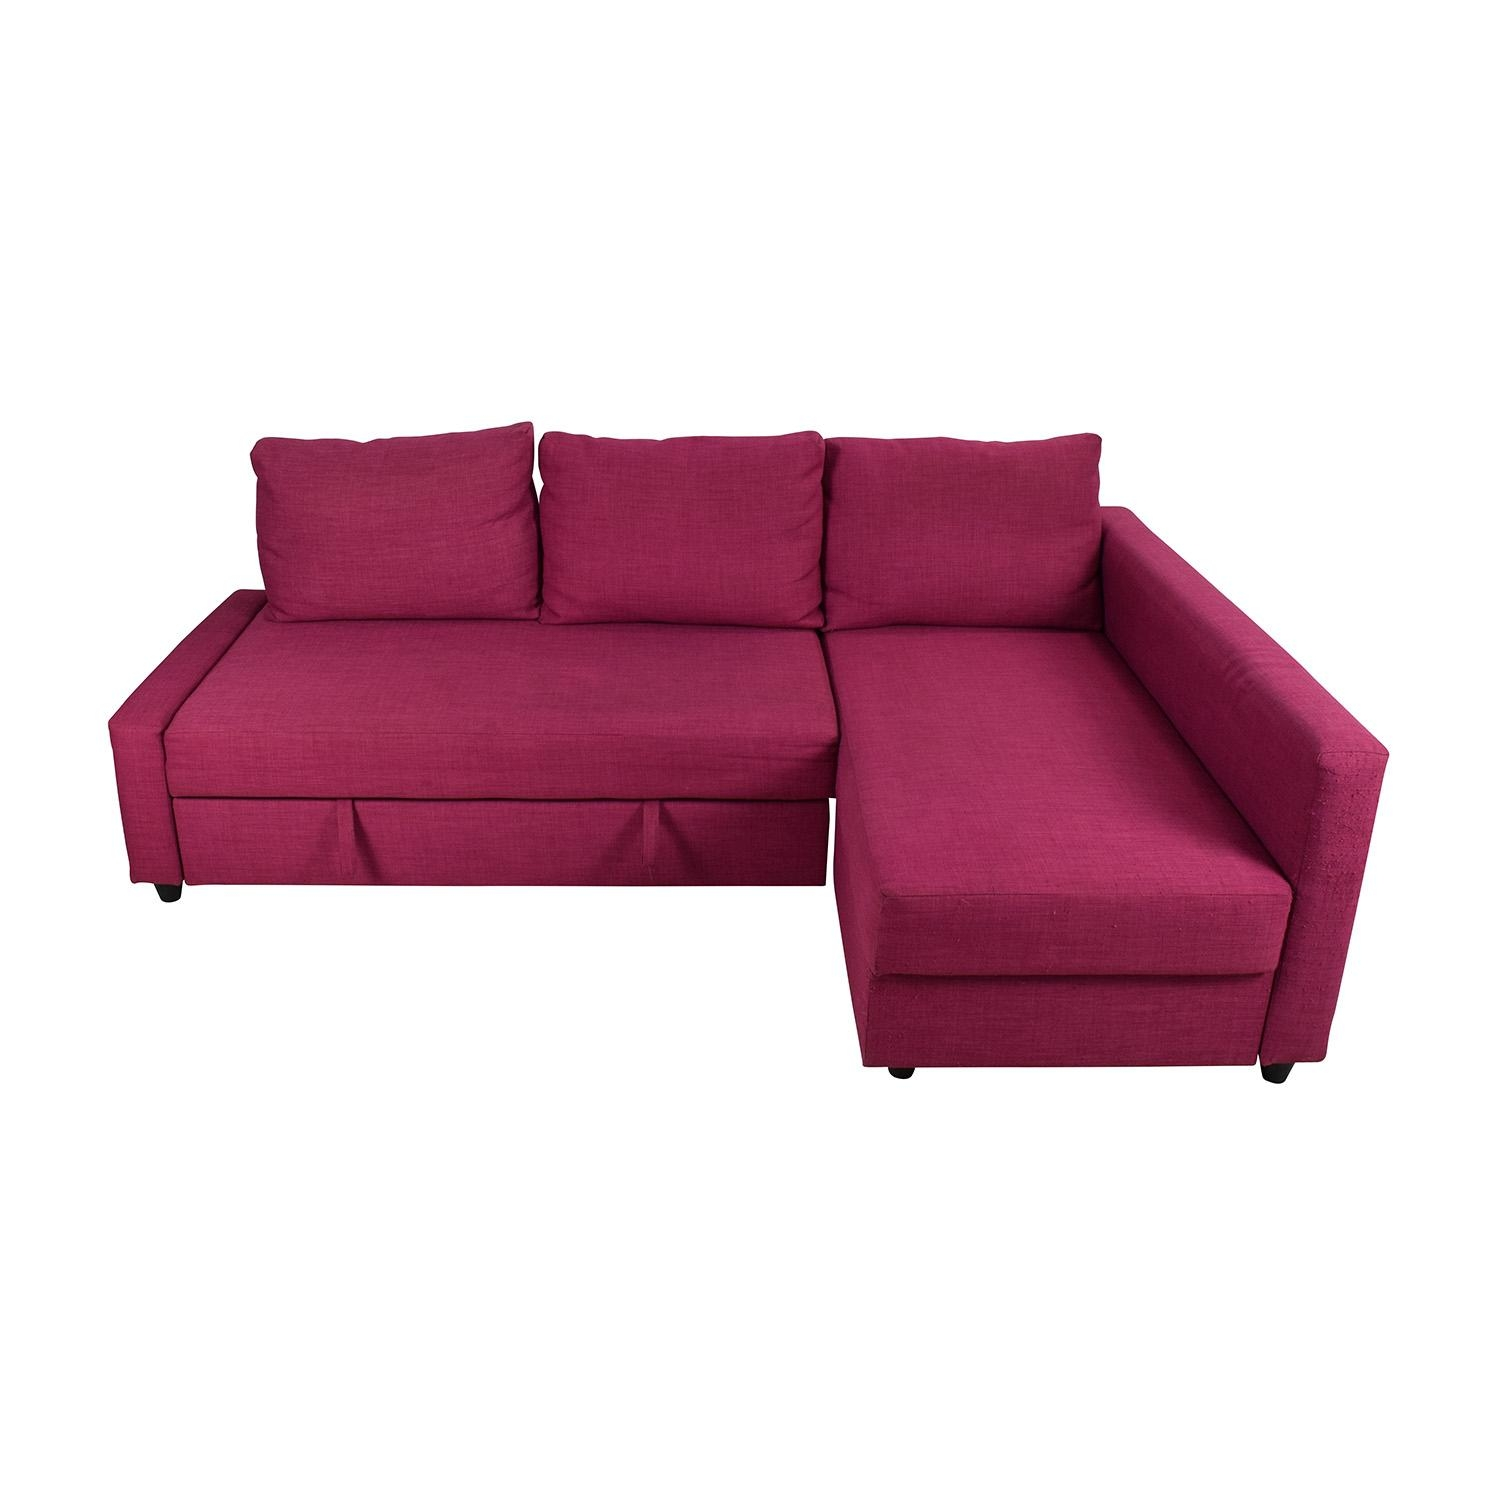 Furniture: Impressive Ikea Sleeper Sofas With Attractive Color With Red Sofa Beds Ikea (View 13 of 20)